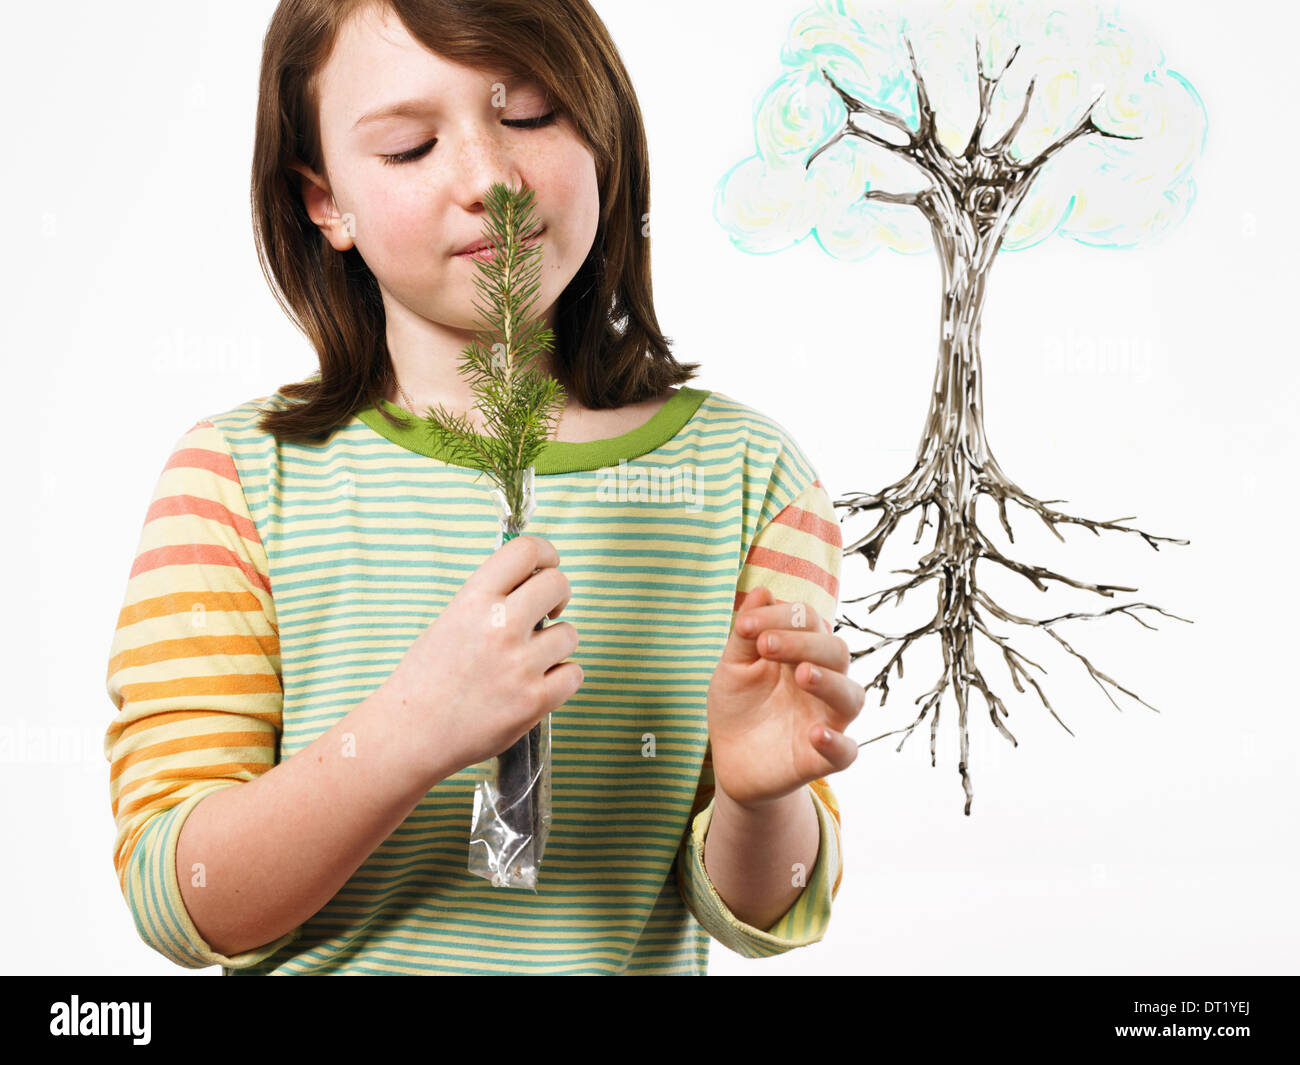 A young girl holding a small evergreen seedling to her nose and smelling it plant with roots on a clear see-through - Stock Image